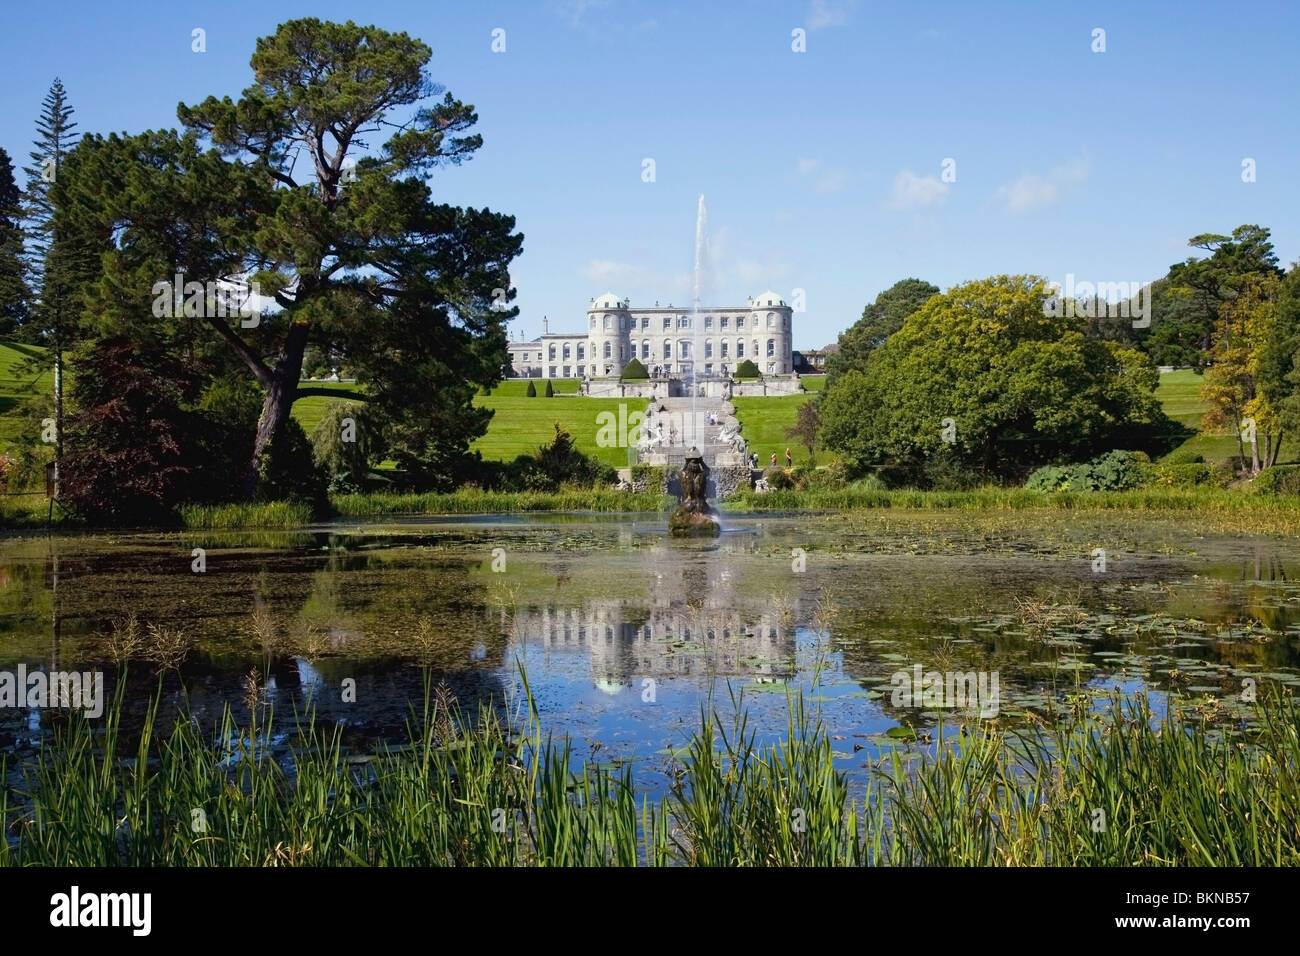 Enniskerry County Wicklow Ireland Powerscourt House And Gardens Stock Photo Royalty Free